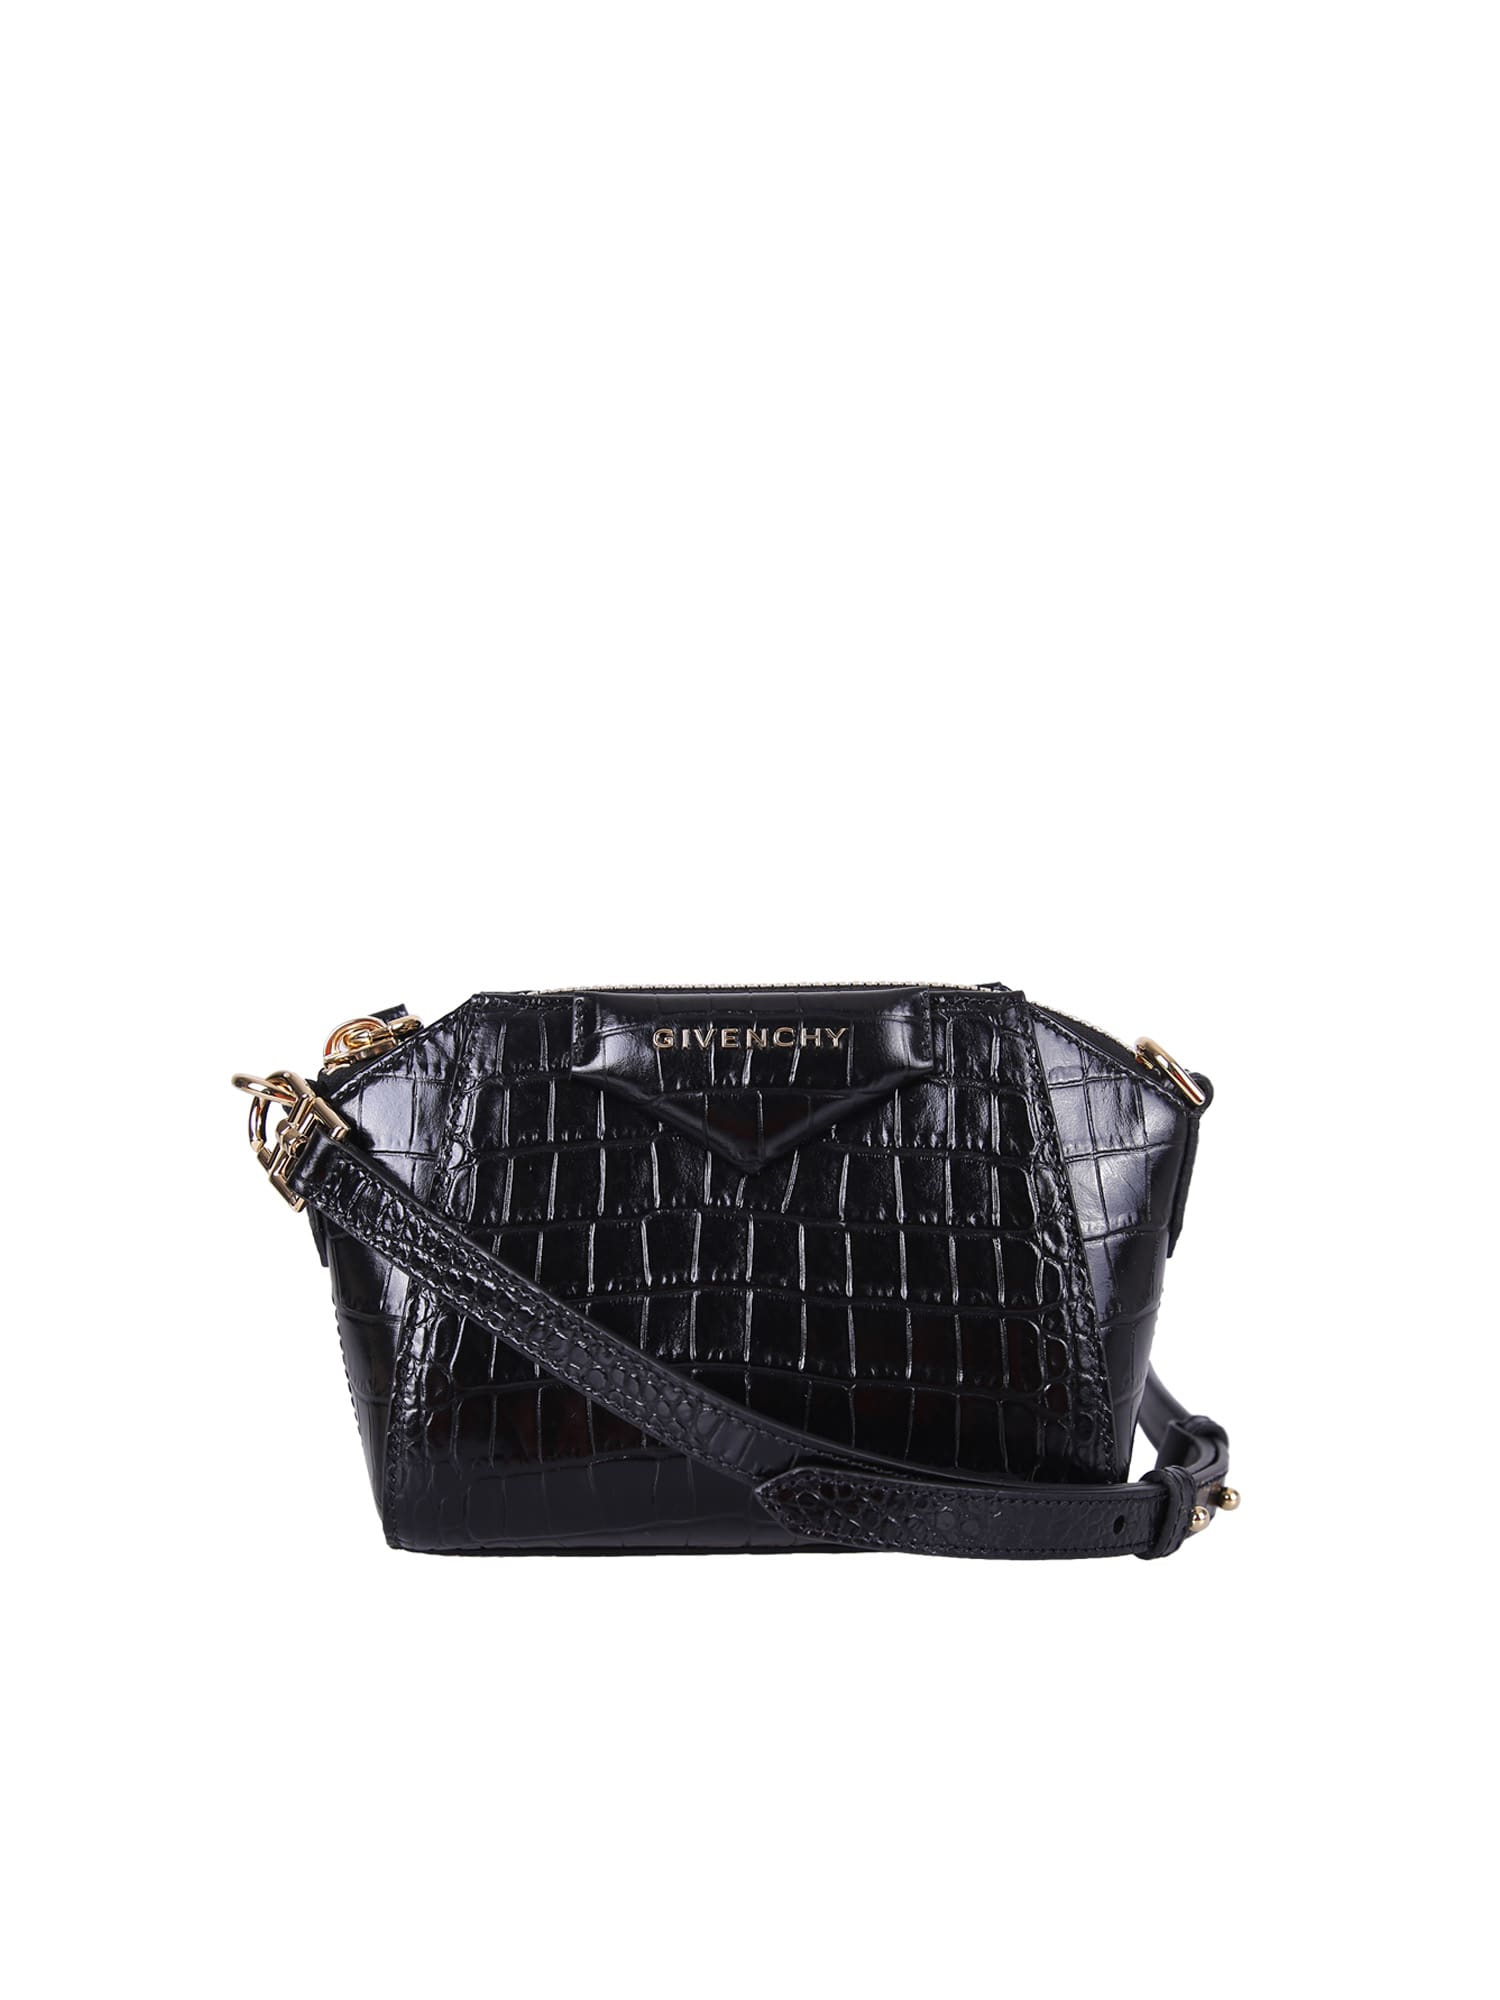 Givenchy ANTIGONA NANO BAG